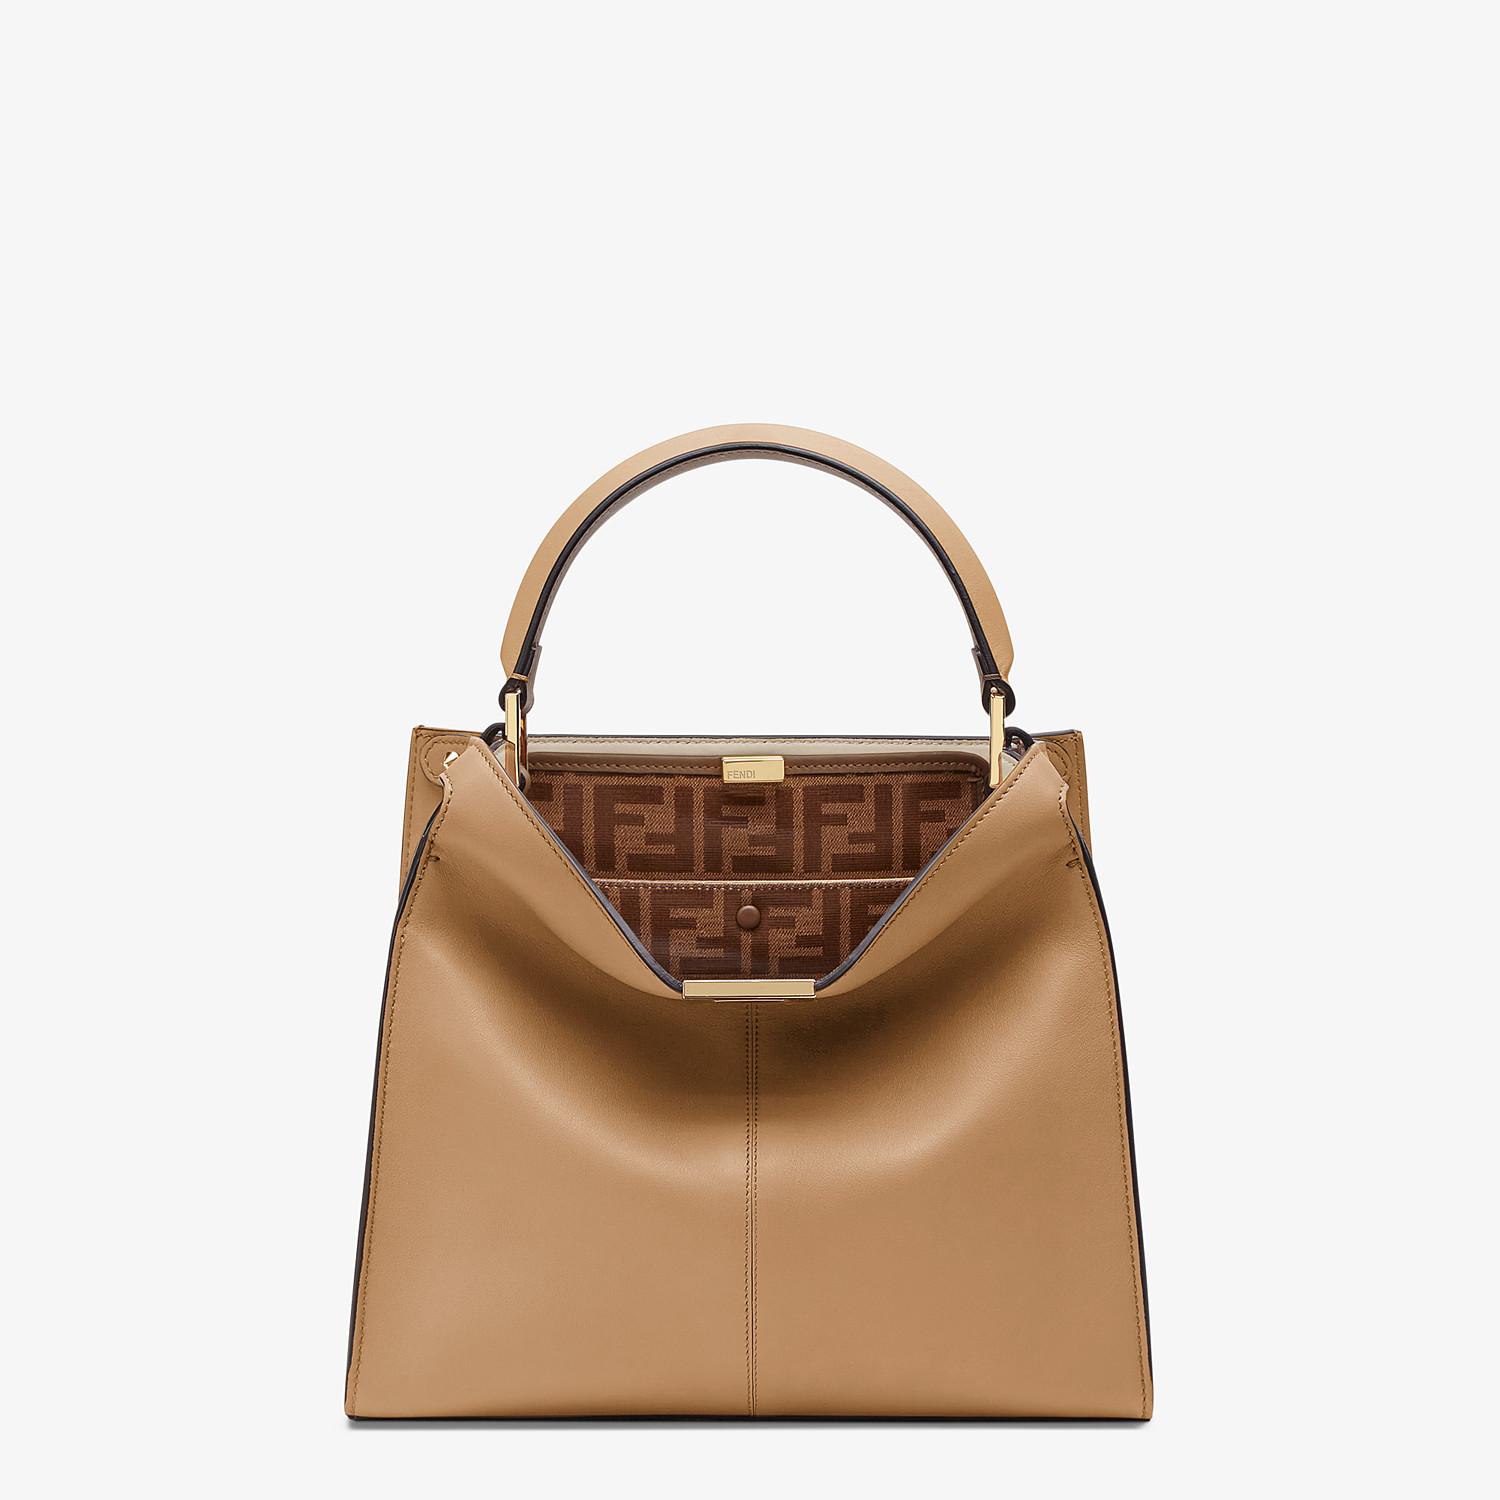 FENDI MEDIUM PEEKABOO X-LITE - Beige leather bag - view 3 detail